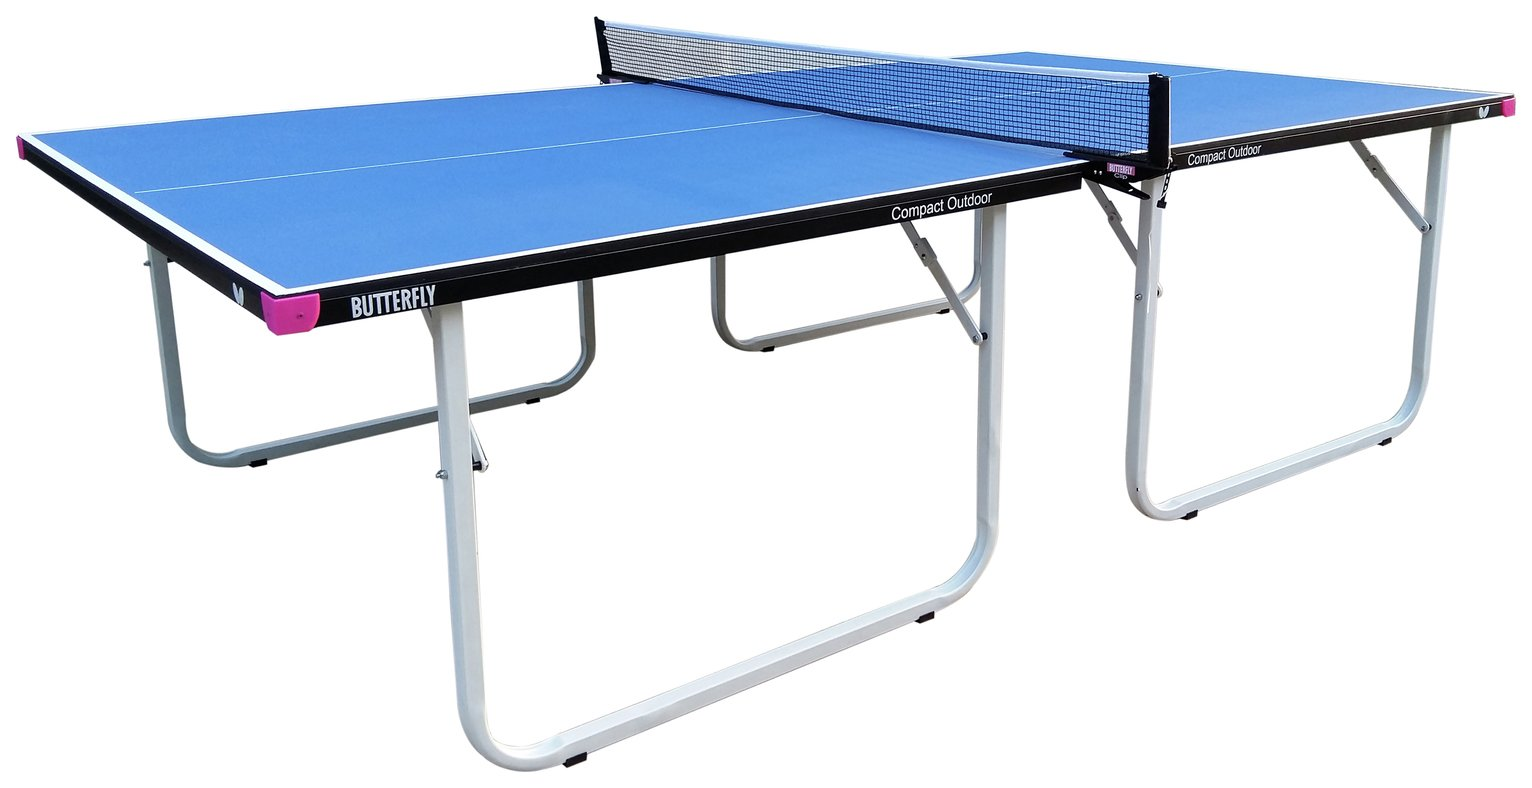 Image of Butterfly Compact 16 Indoor Blue Table Tennis Table